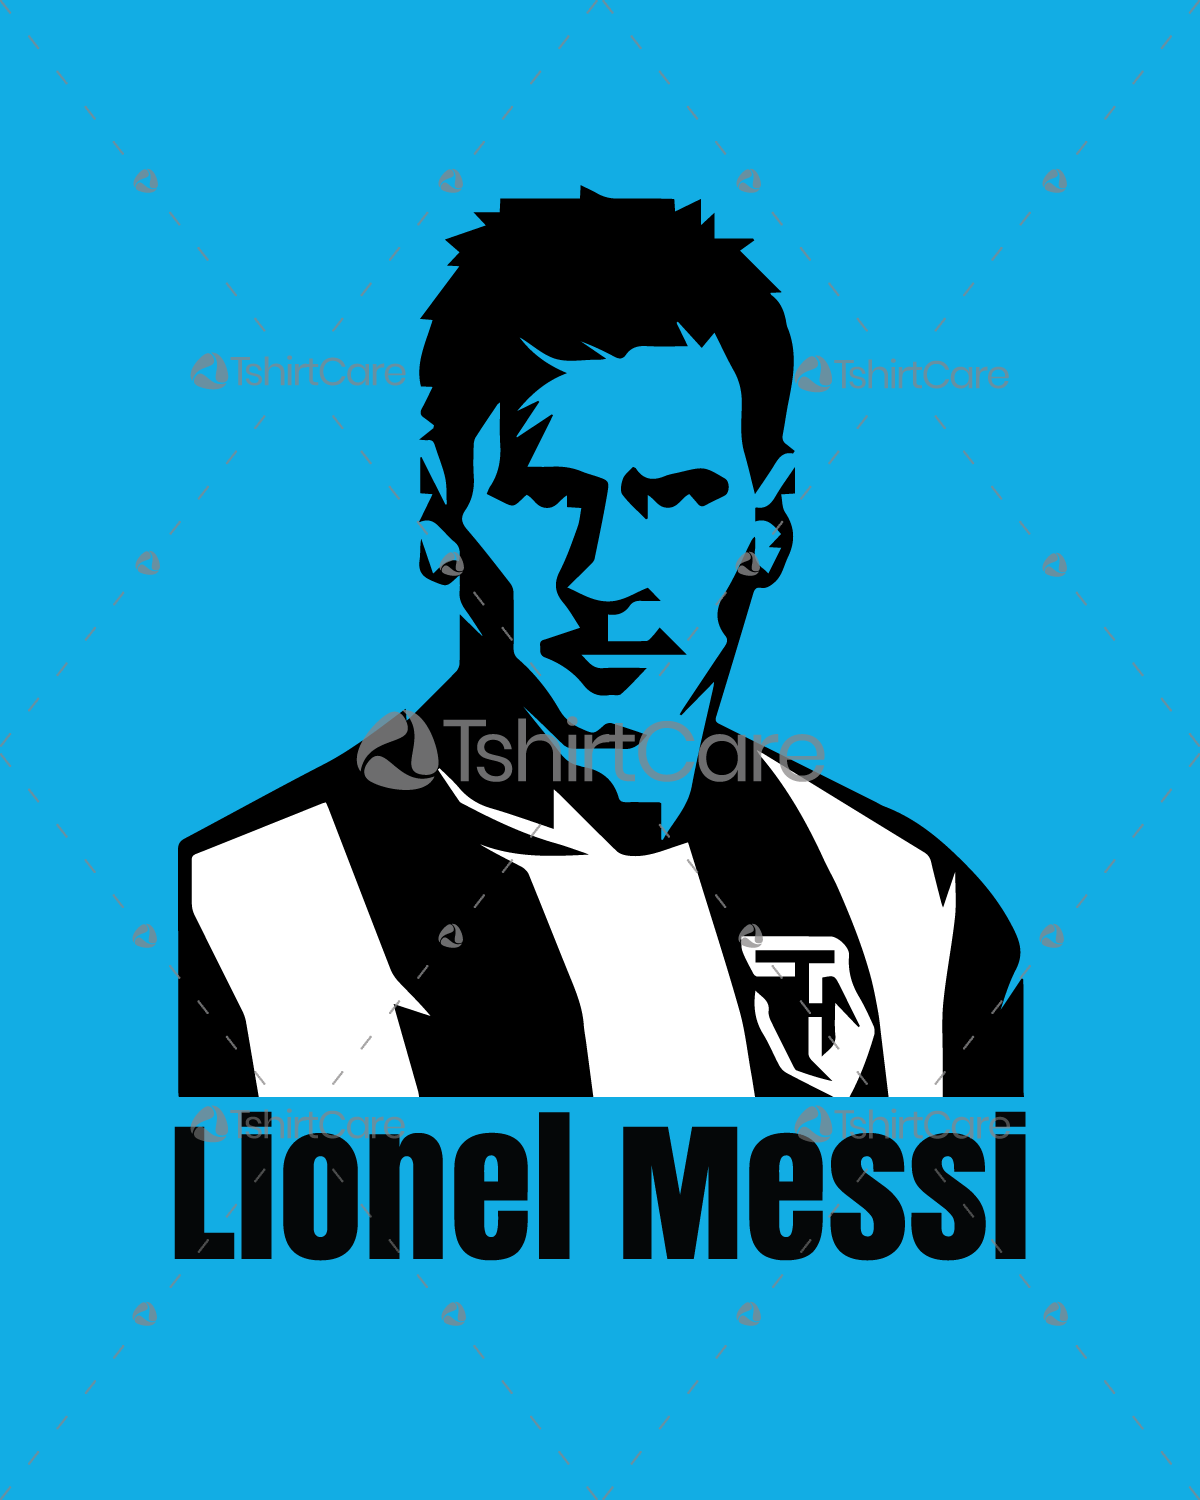 ca2bb3f6e0a Lionel messi face T shirt   Jersey Design for Argentina   Barcelona Sports  Fan ...